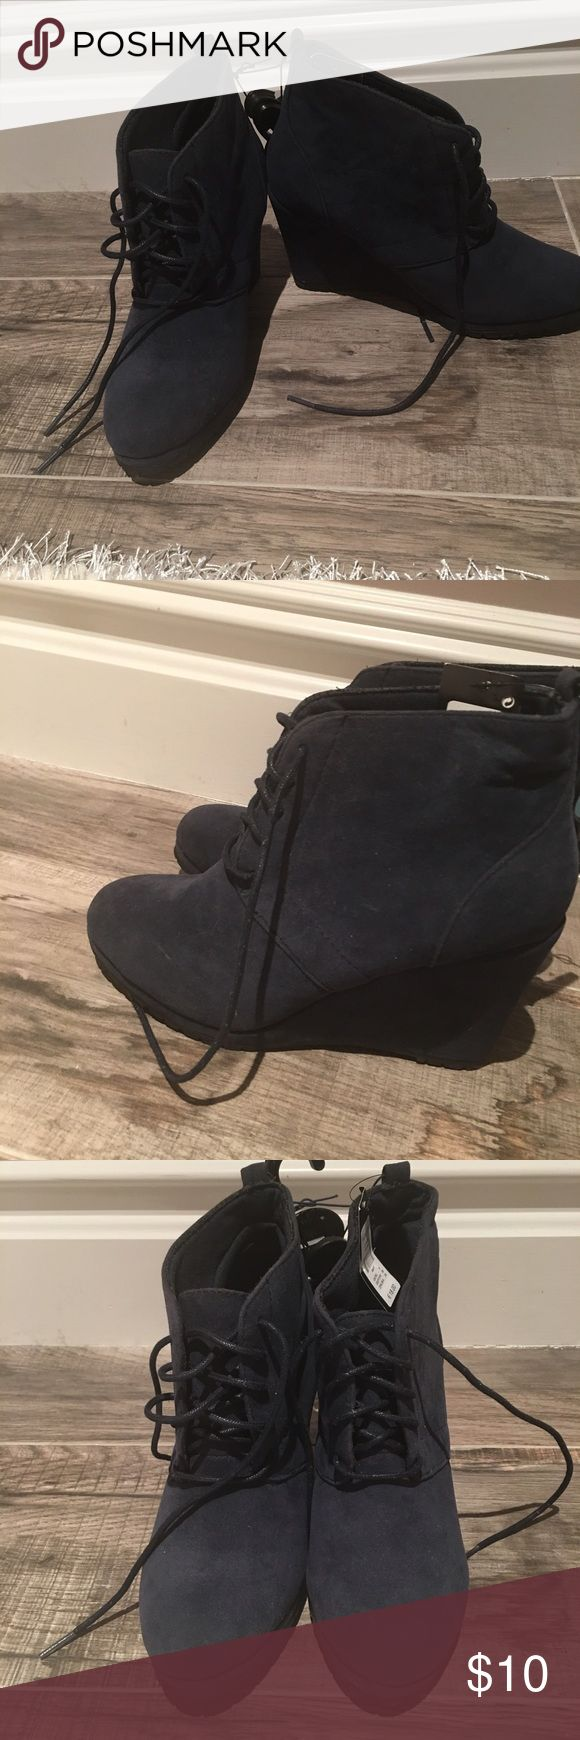 Perfect heeled navy bootie SIZE 8️⃣ Size US 8 navy bootie! New with tags from primark(European design store similar to forever21). Perfect sized heel. SUPER COMFY! Goes well with a dress or jeans. primark Shoes Ankle Boots & Booties